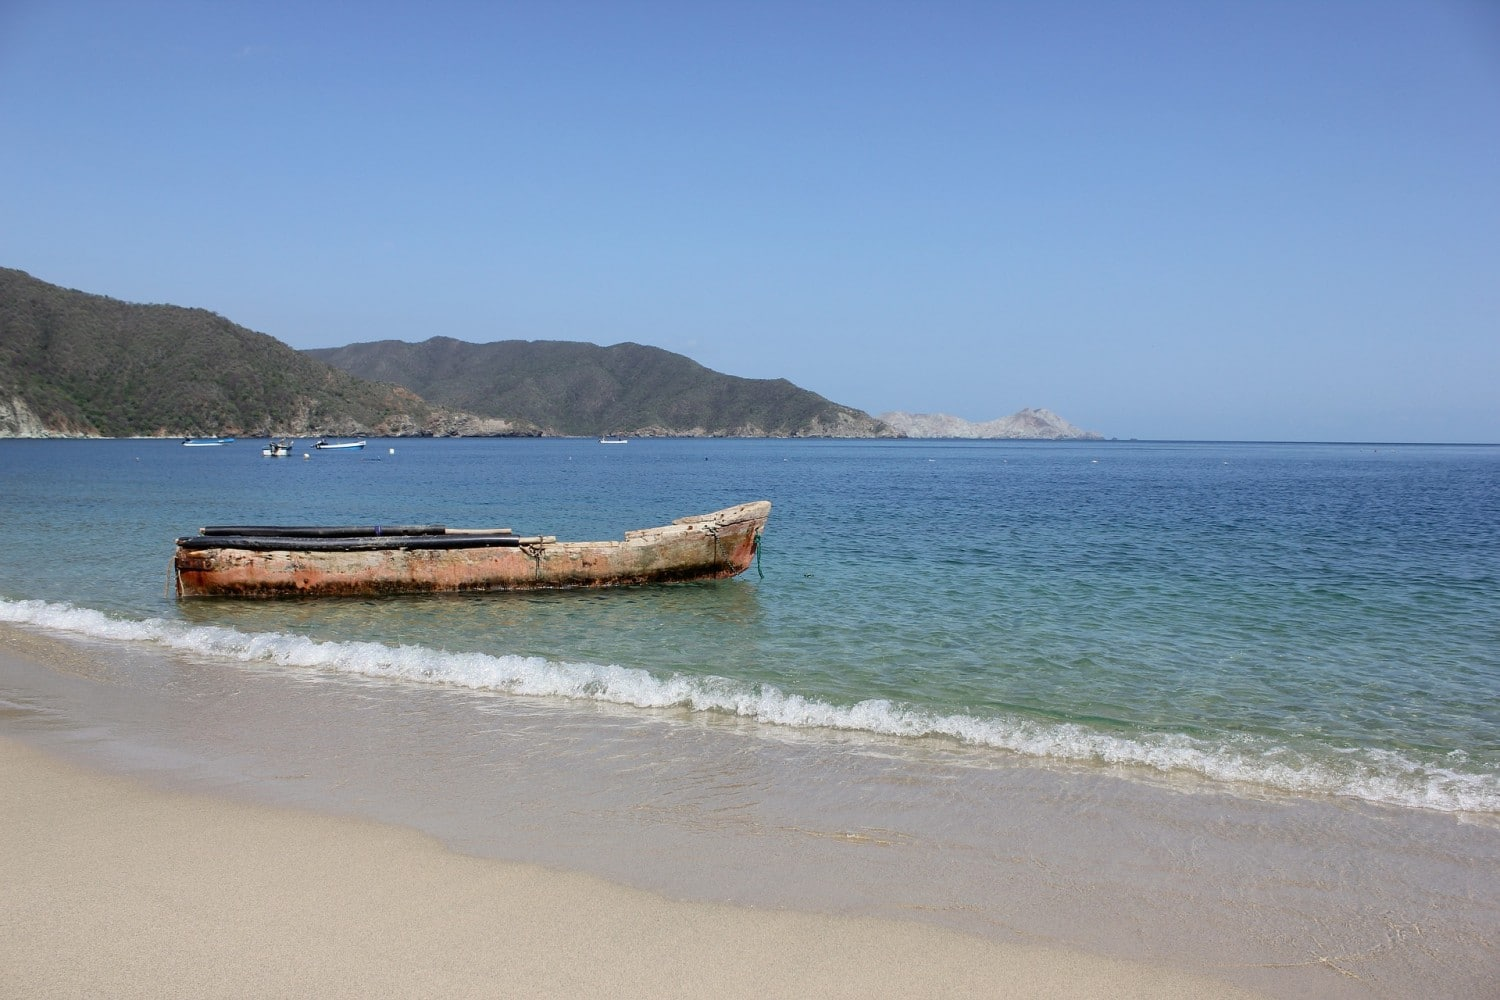 4 ways to get to Tayrona from Santa Marta and recomendation